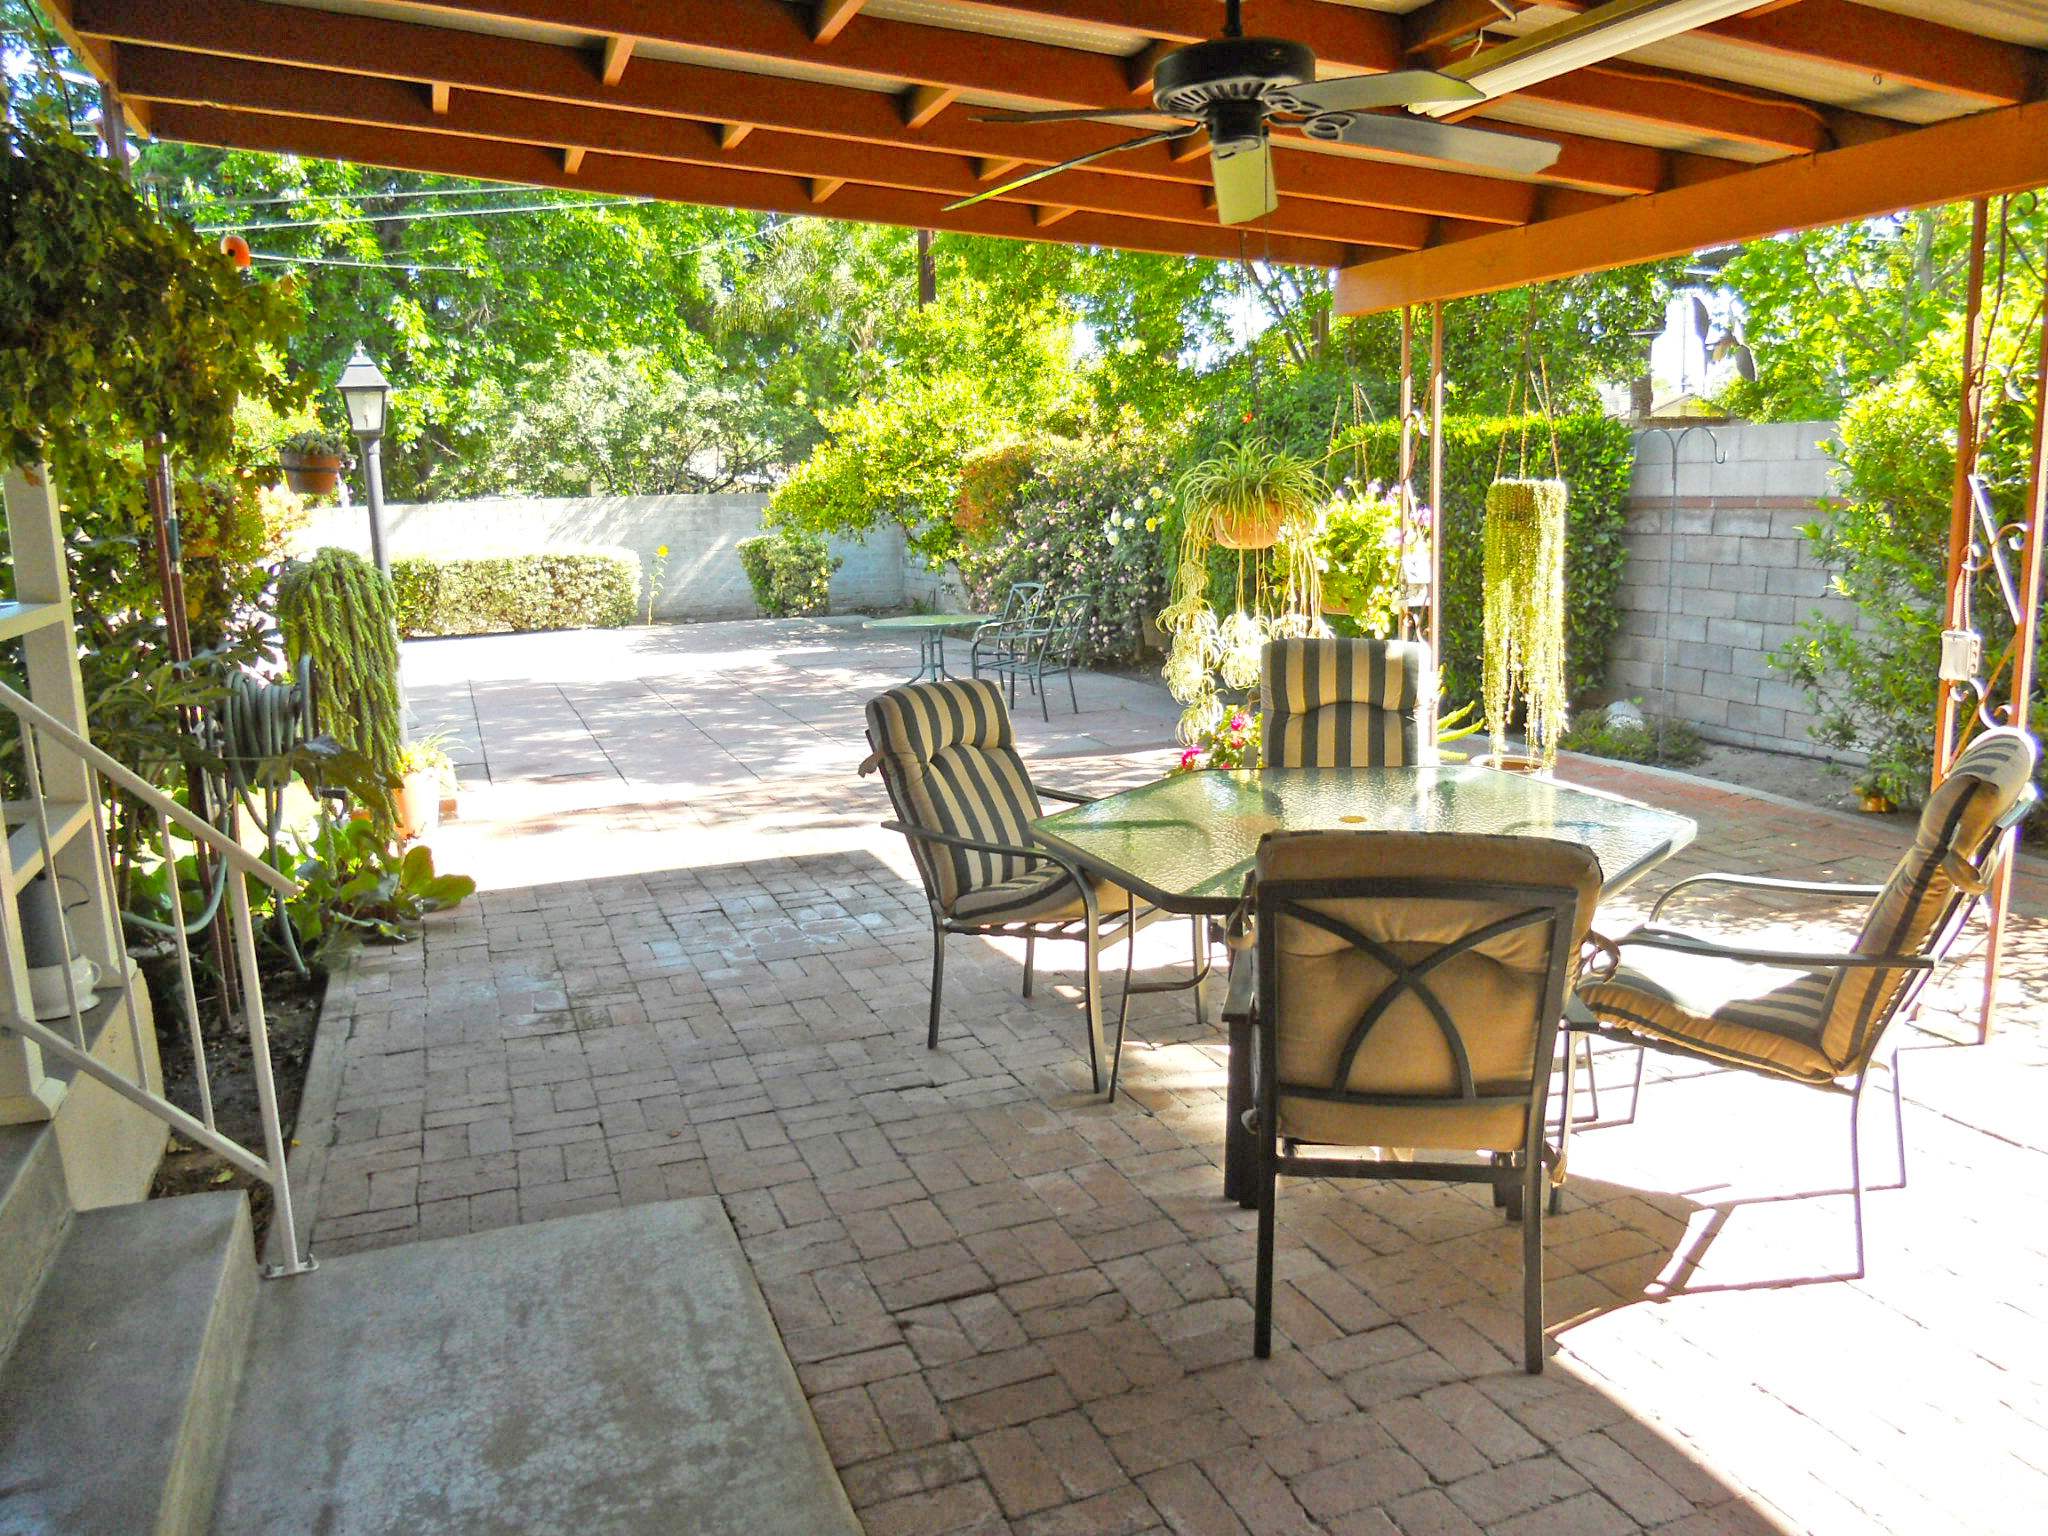 Lovely, breezy covered patio off the side of the house, which makes room in the backyard for a pool.